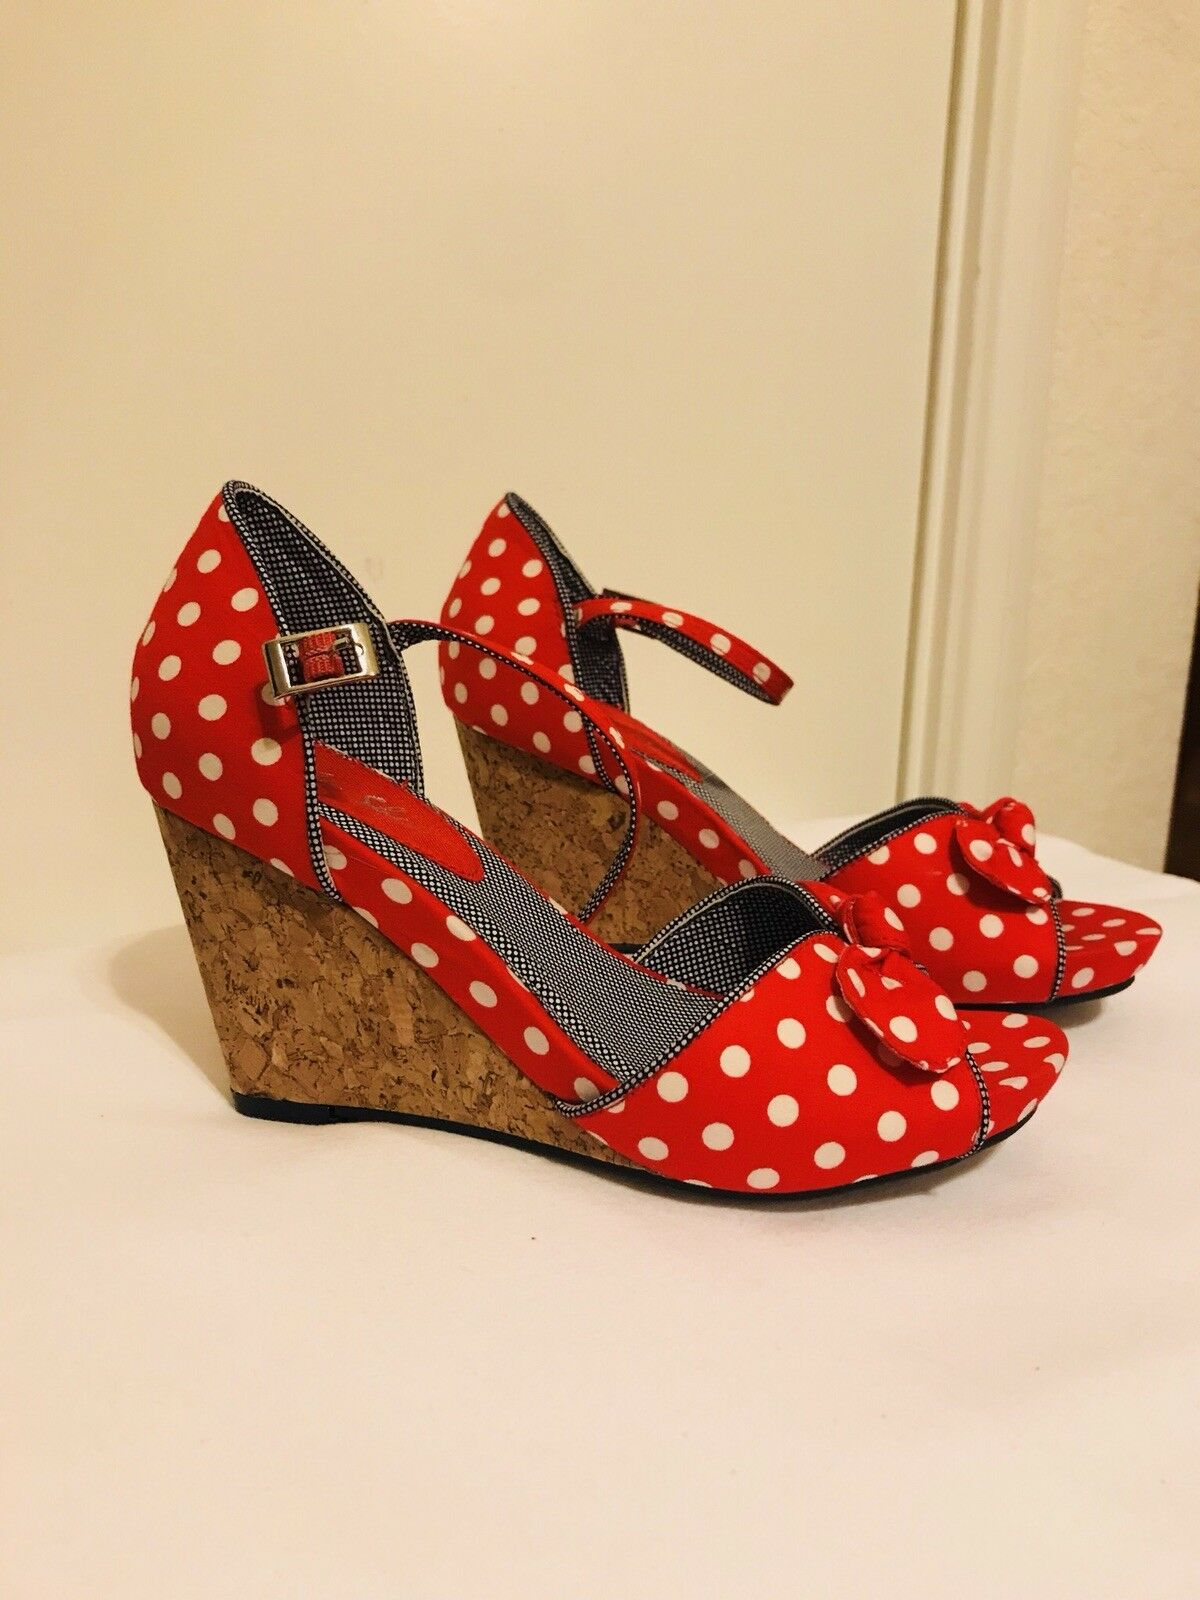 Claic style rosso  bianca  Polka Dot Wedges, Ruby Shoo Collection, Never Worn  nuovo sadico